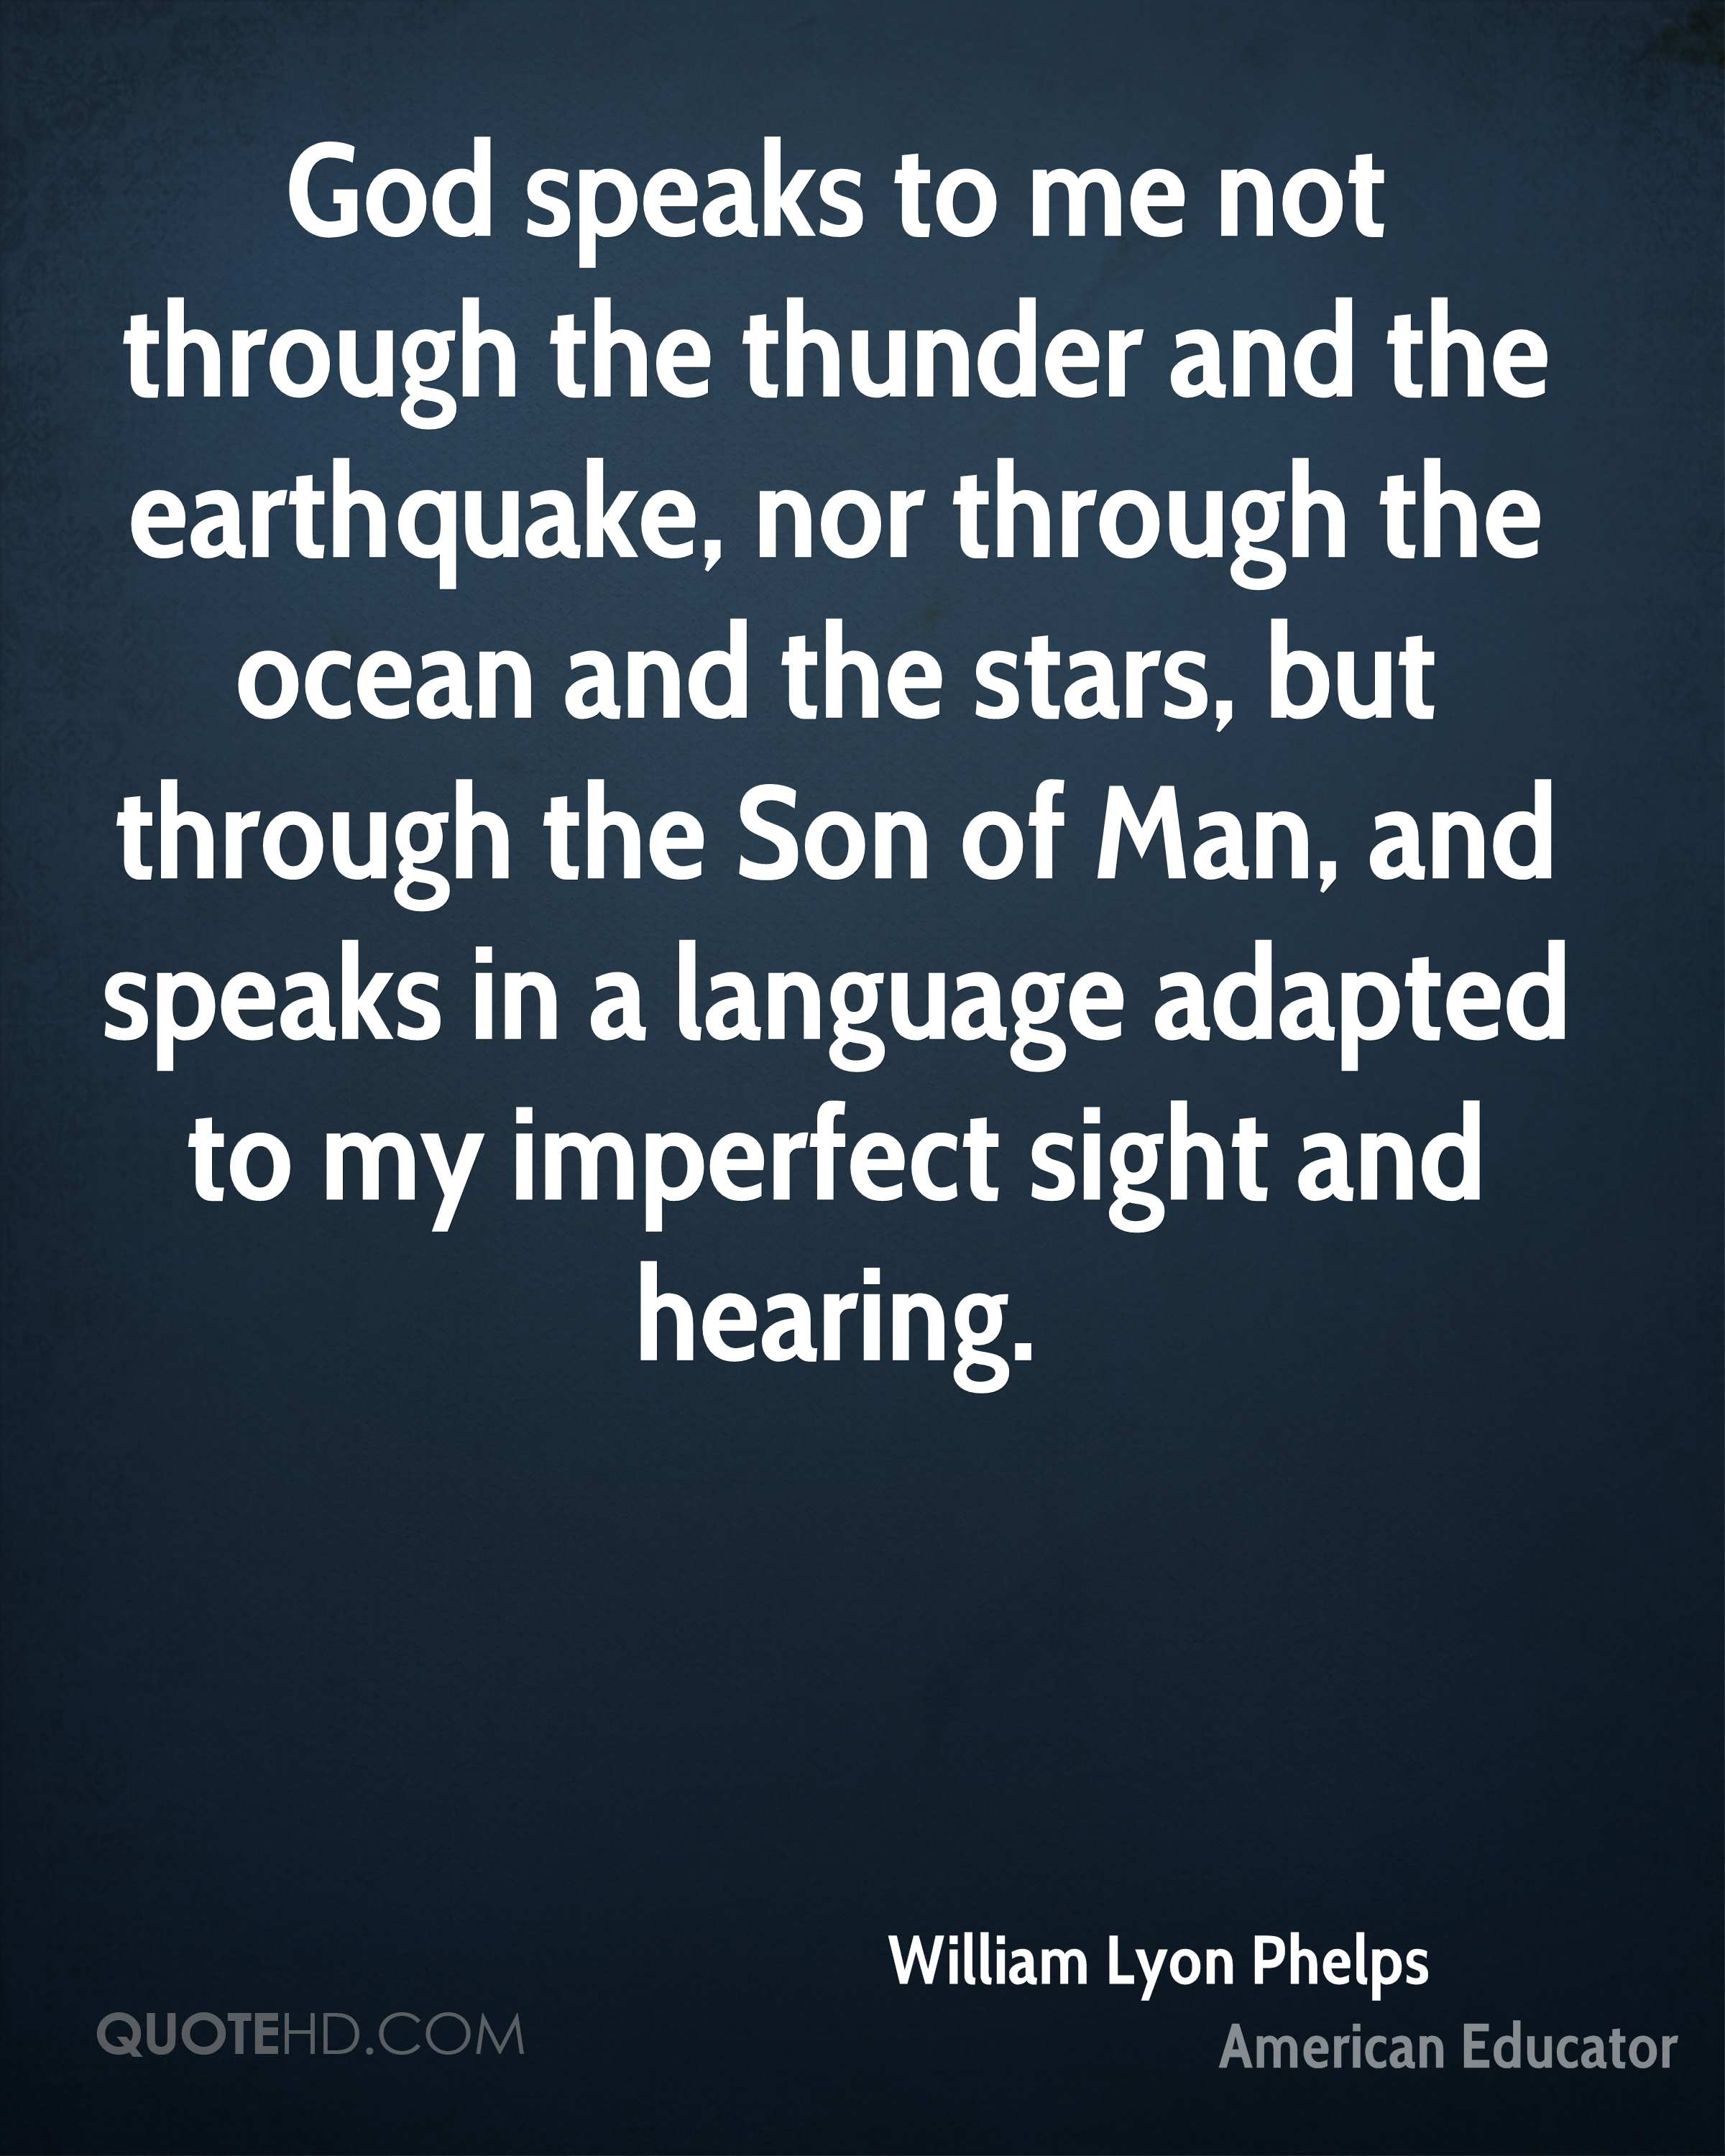 God speaks to me not through the thunder and the earthquake, nor through the ocean and the stars, but through the Son of Man, and speaks in a language adapted to my imperfect sight and hearing.